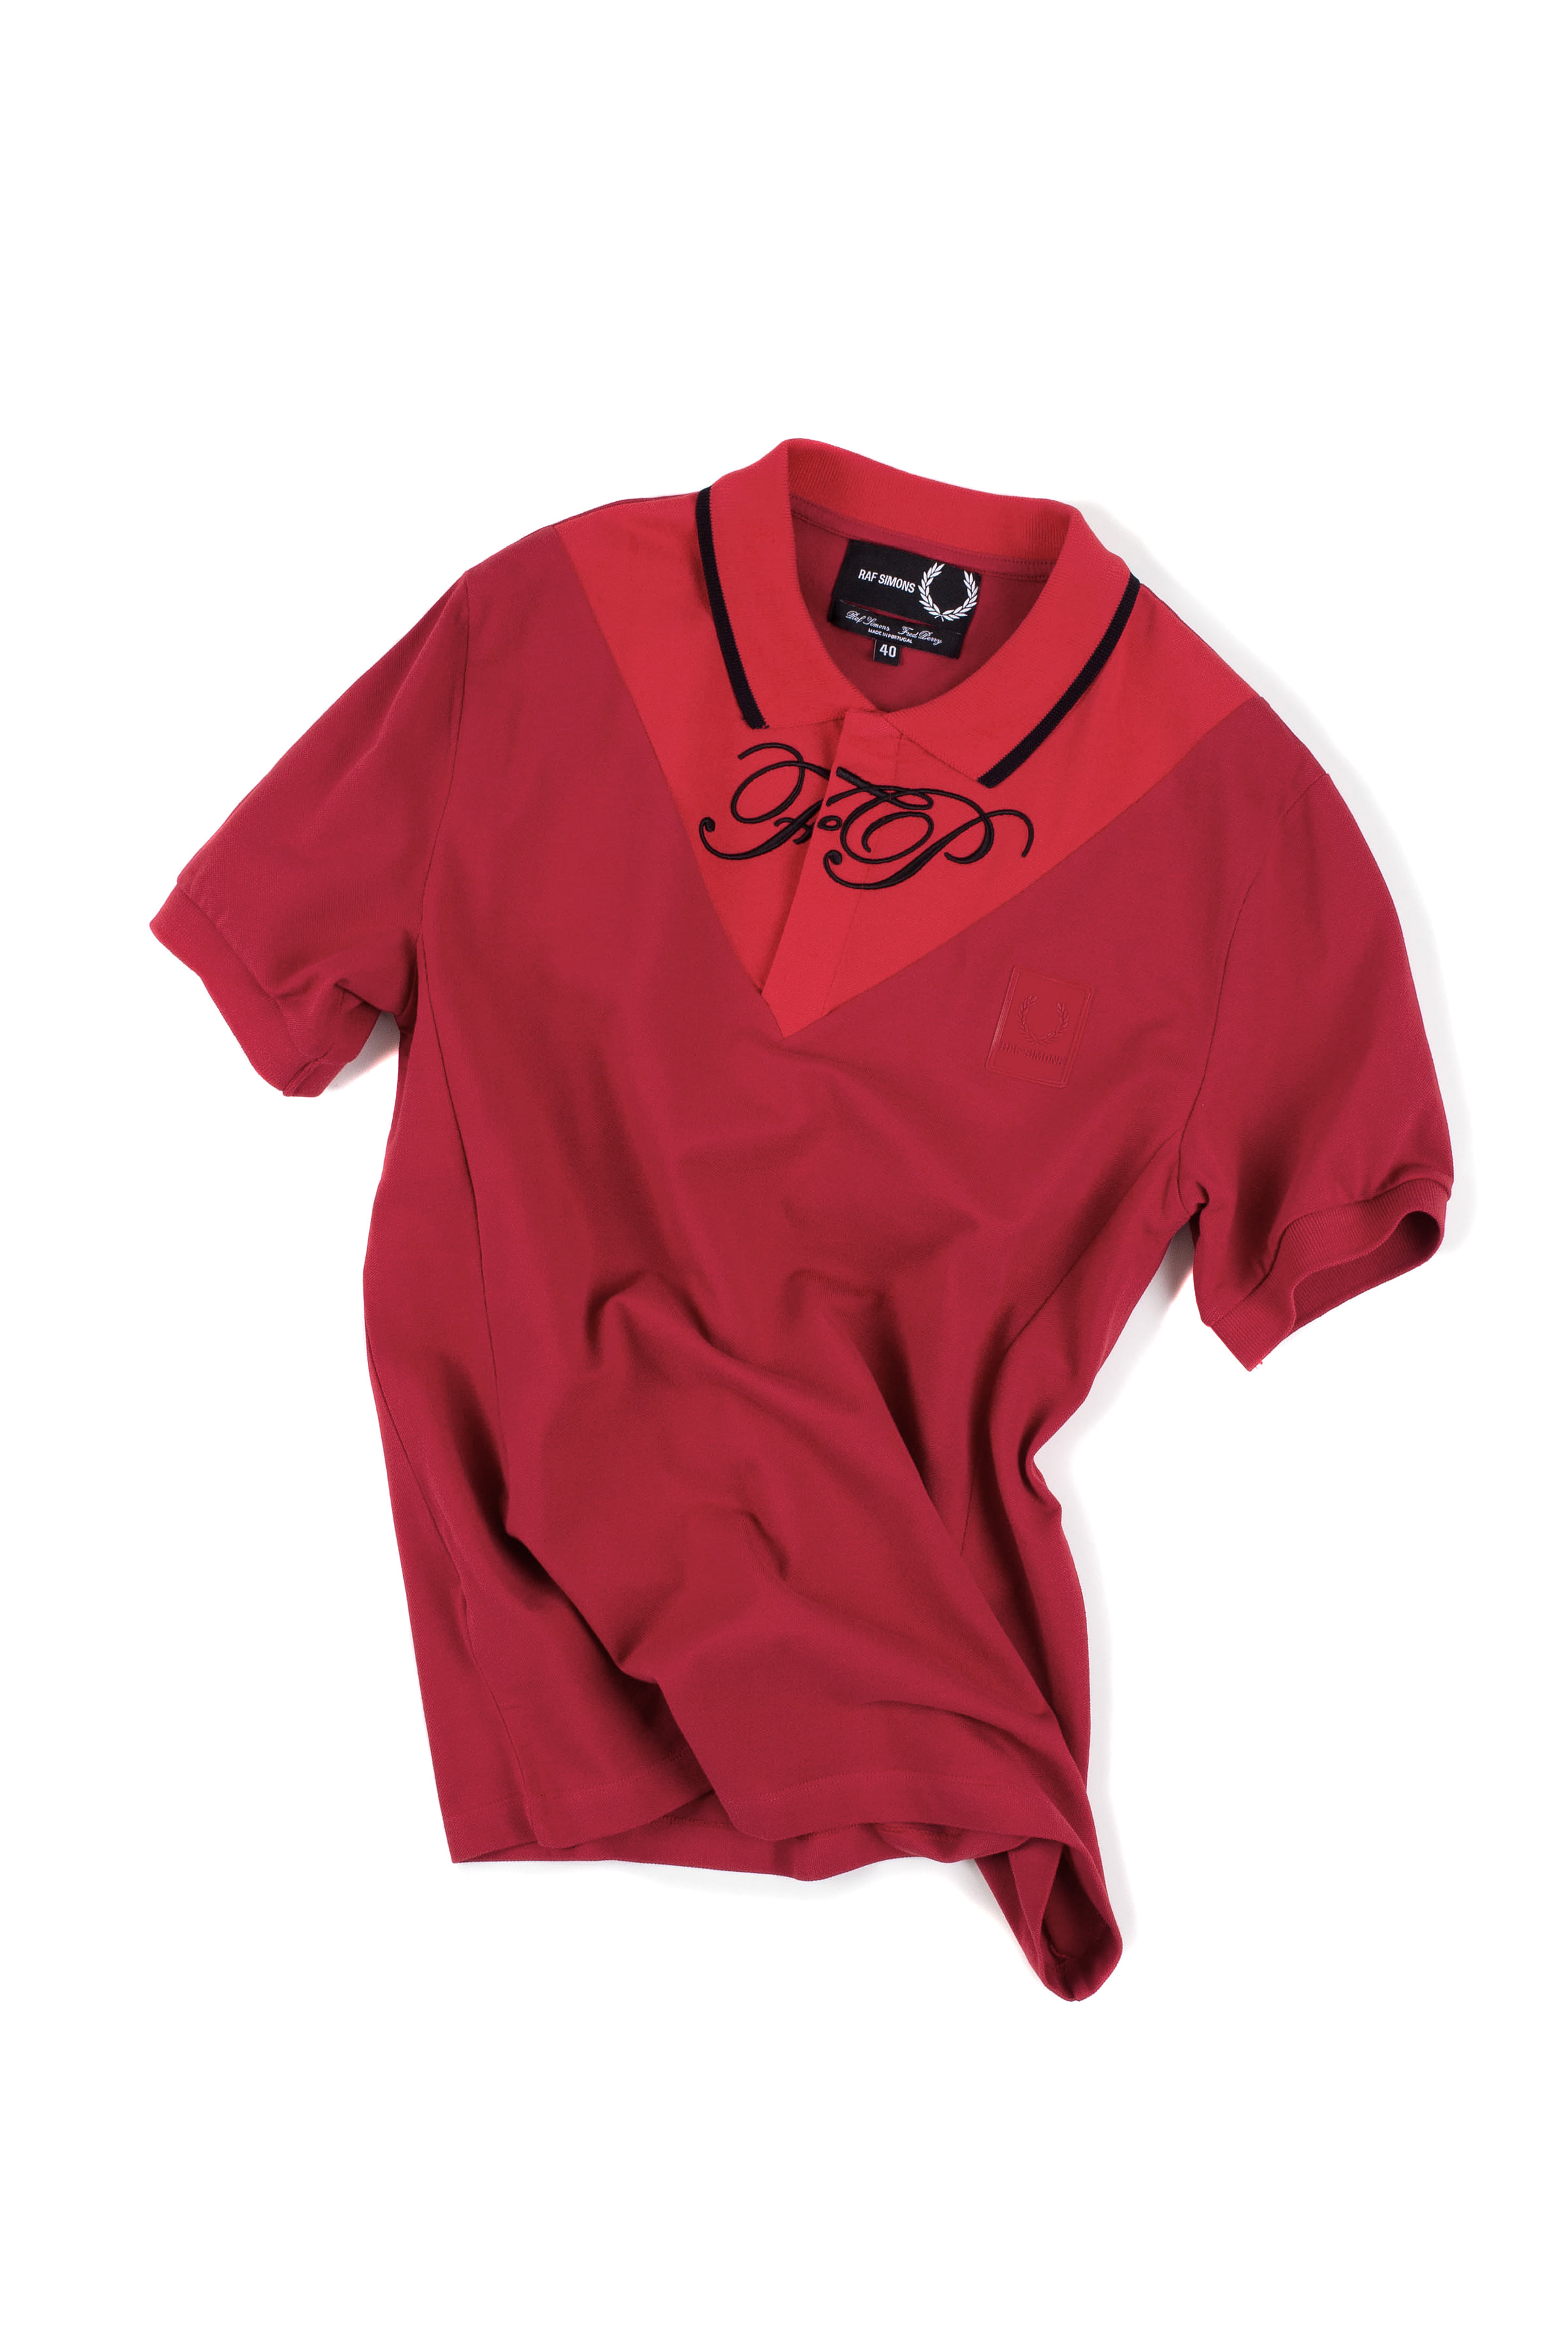 FRED PERRY x Raf Simons : V-Insert Pique Shirt (Red)